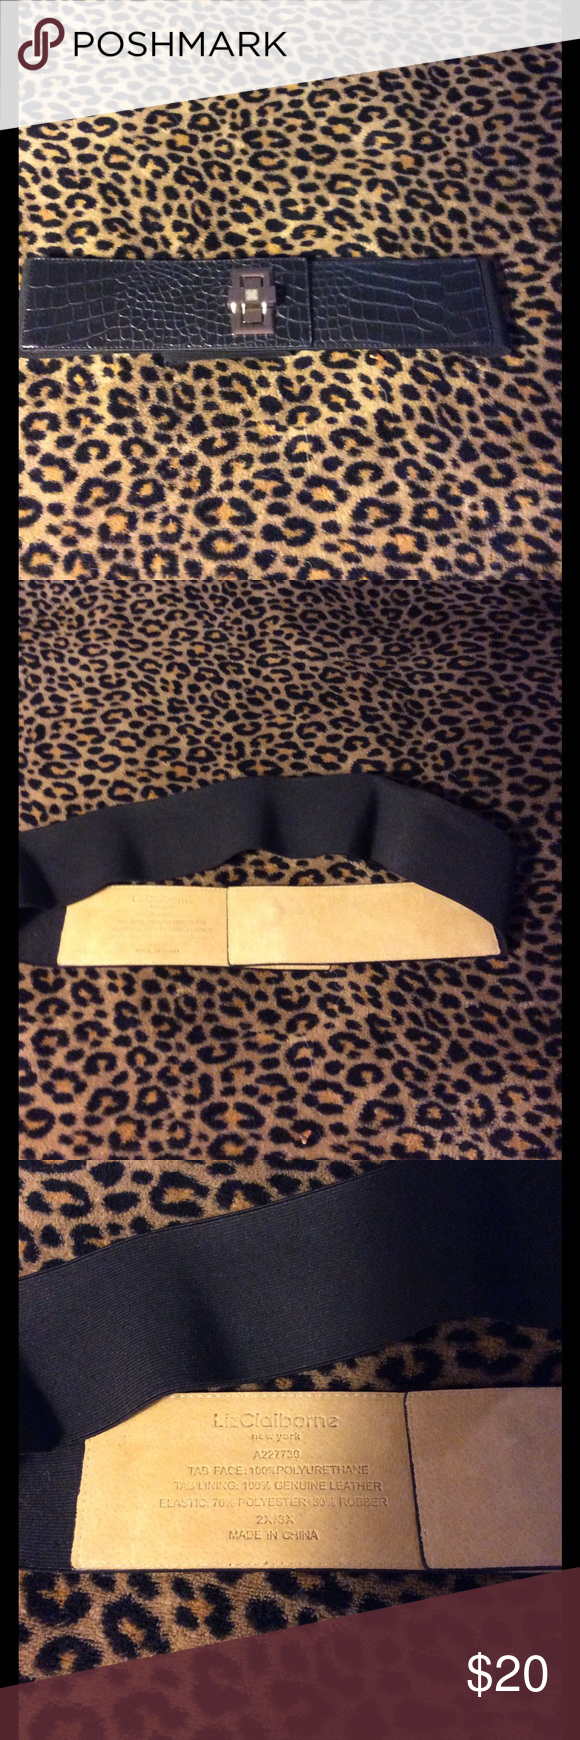 LIZ CLAIBORNE Leather/Elastic Turn-lock BELT 🦋🦋 NWOT🦋Excellent Condition 💕BLACK Alligator embossed 💯%GENUINE LEATHER 💥Black Elastic stretches to fit 2X/3X🦋🦋Beautiful Silver-tone Turn-lock hardware💕Never worn!!💥tiny tiny scratches on turn lock and closure/ hardly noticeable(full disclosure) Liz Claiborne Accessories Belts